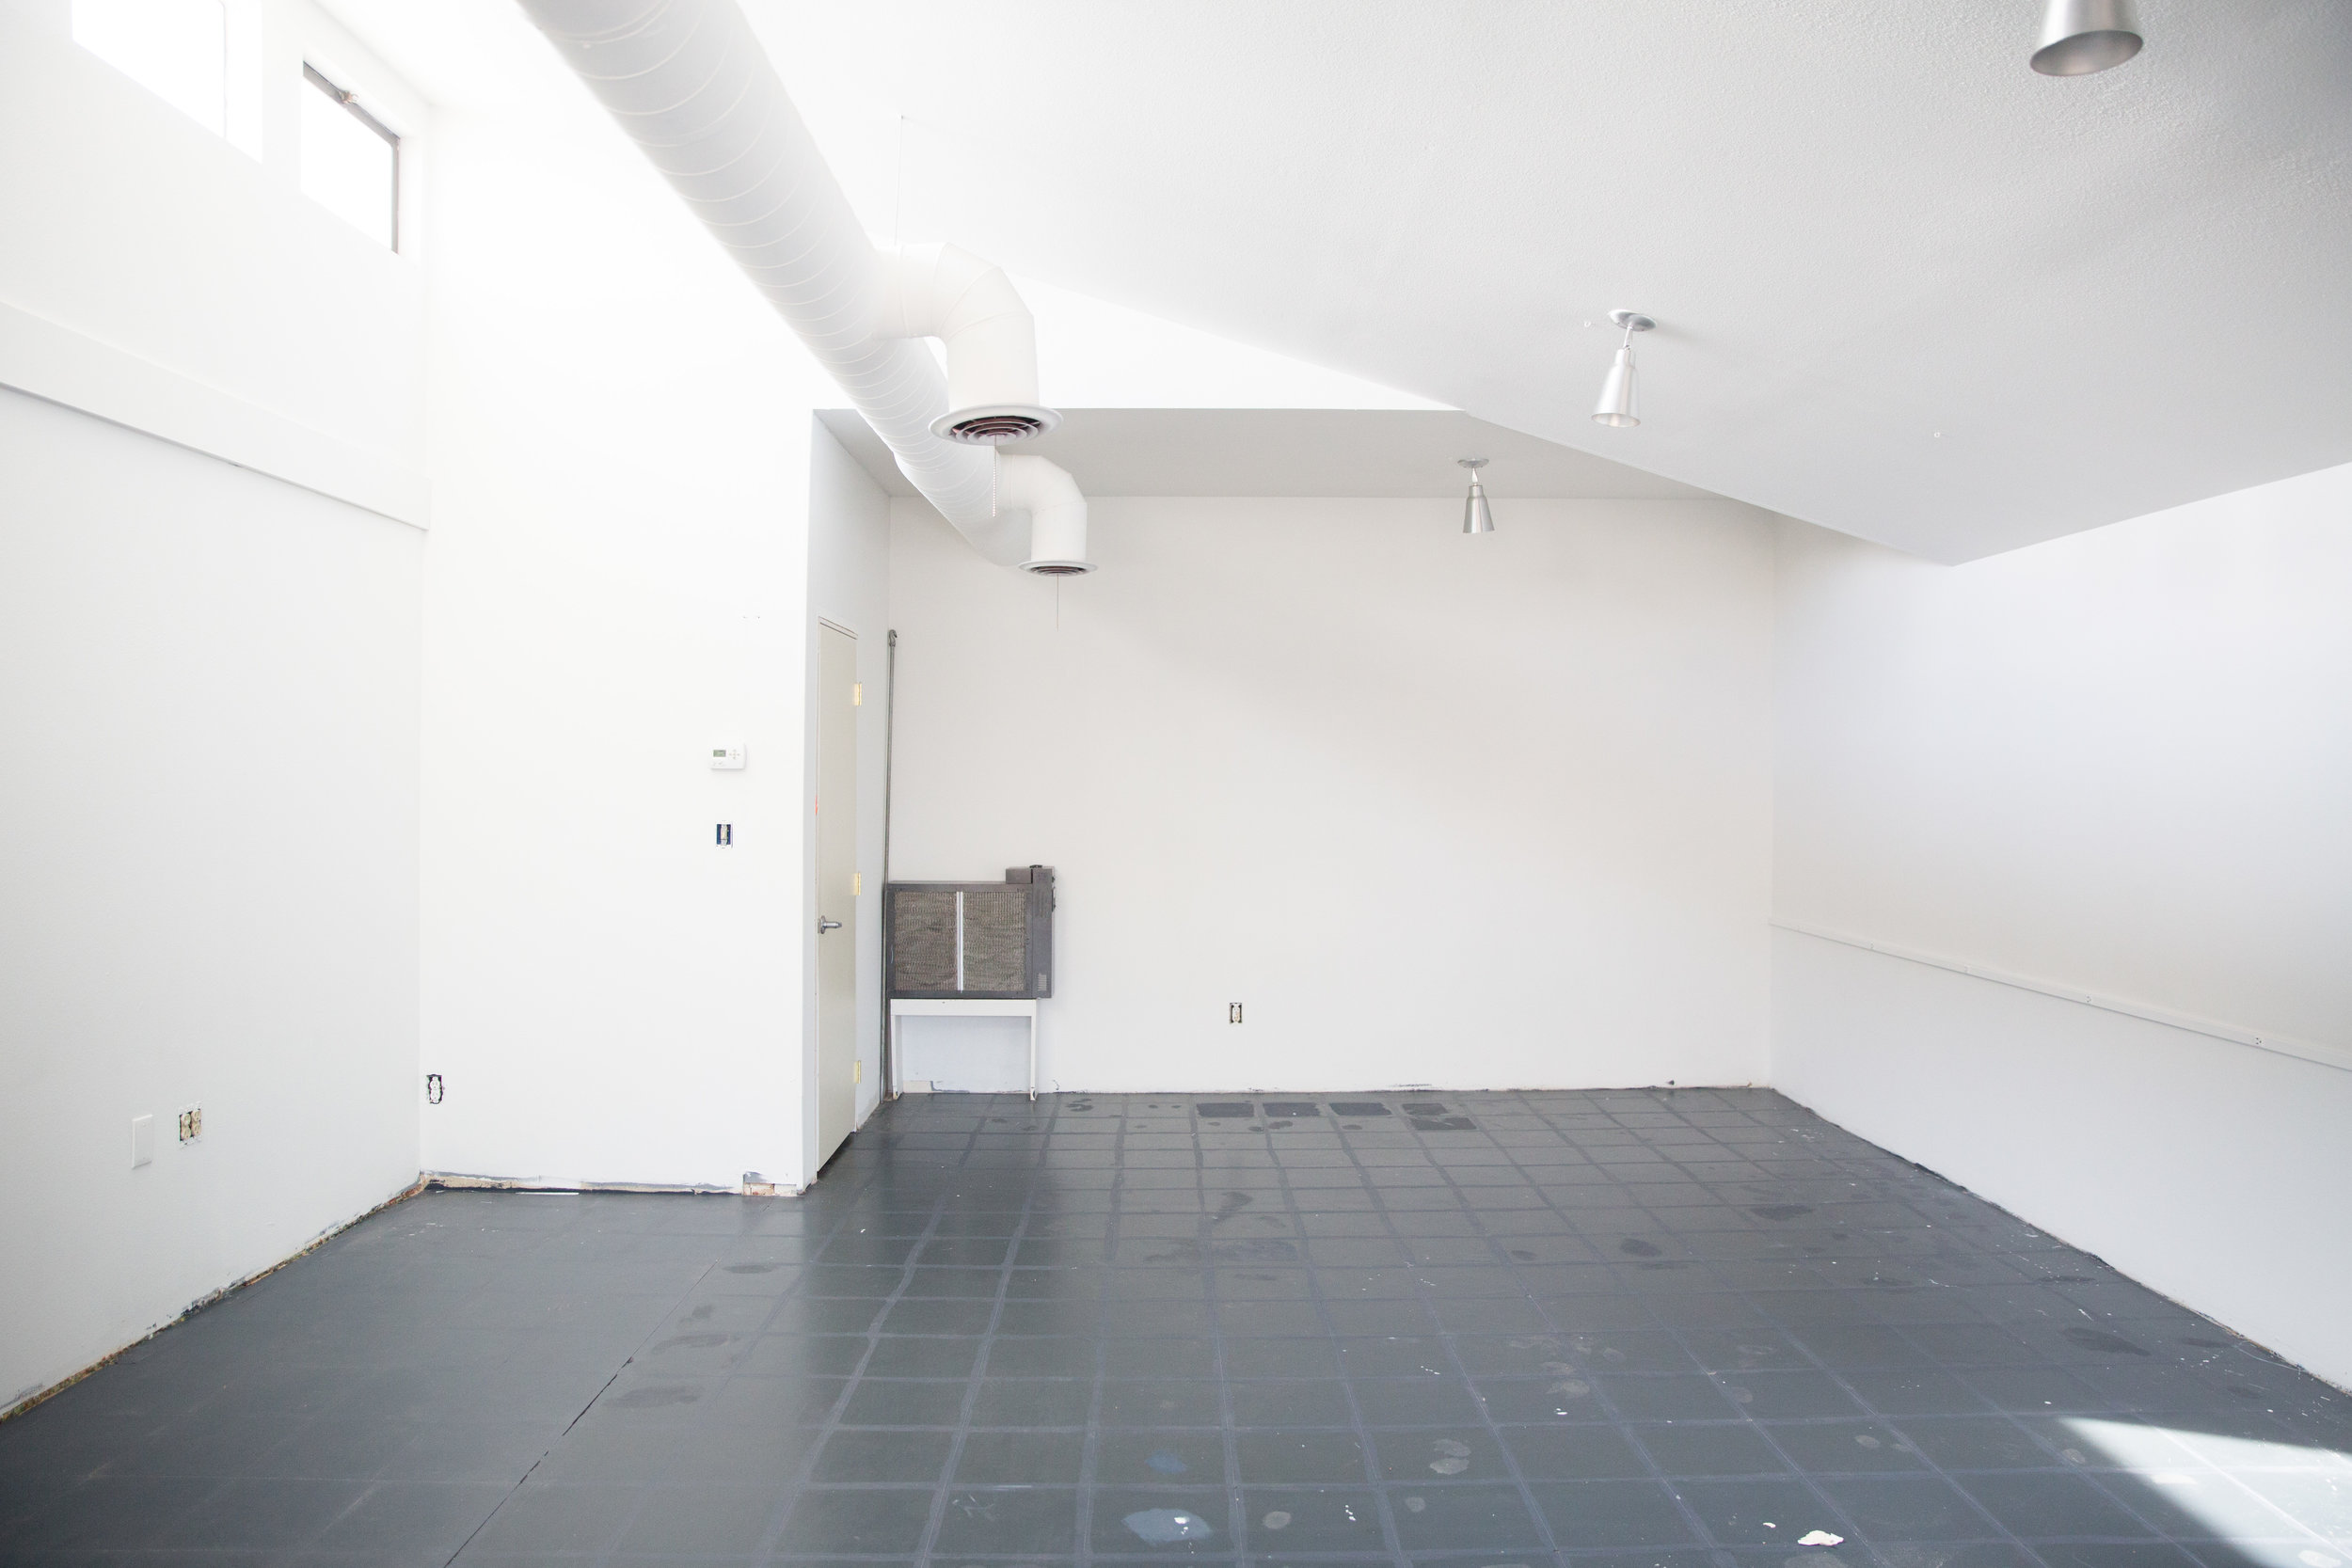 studio-before-and-after-fortitude-and-finn-17.jpg